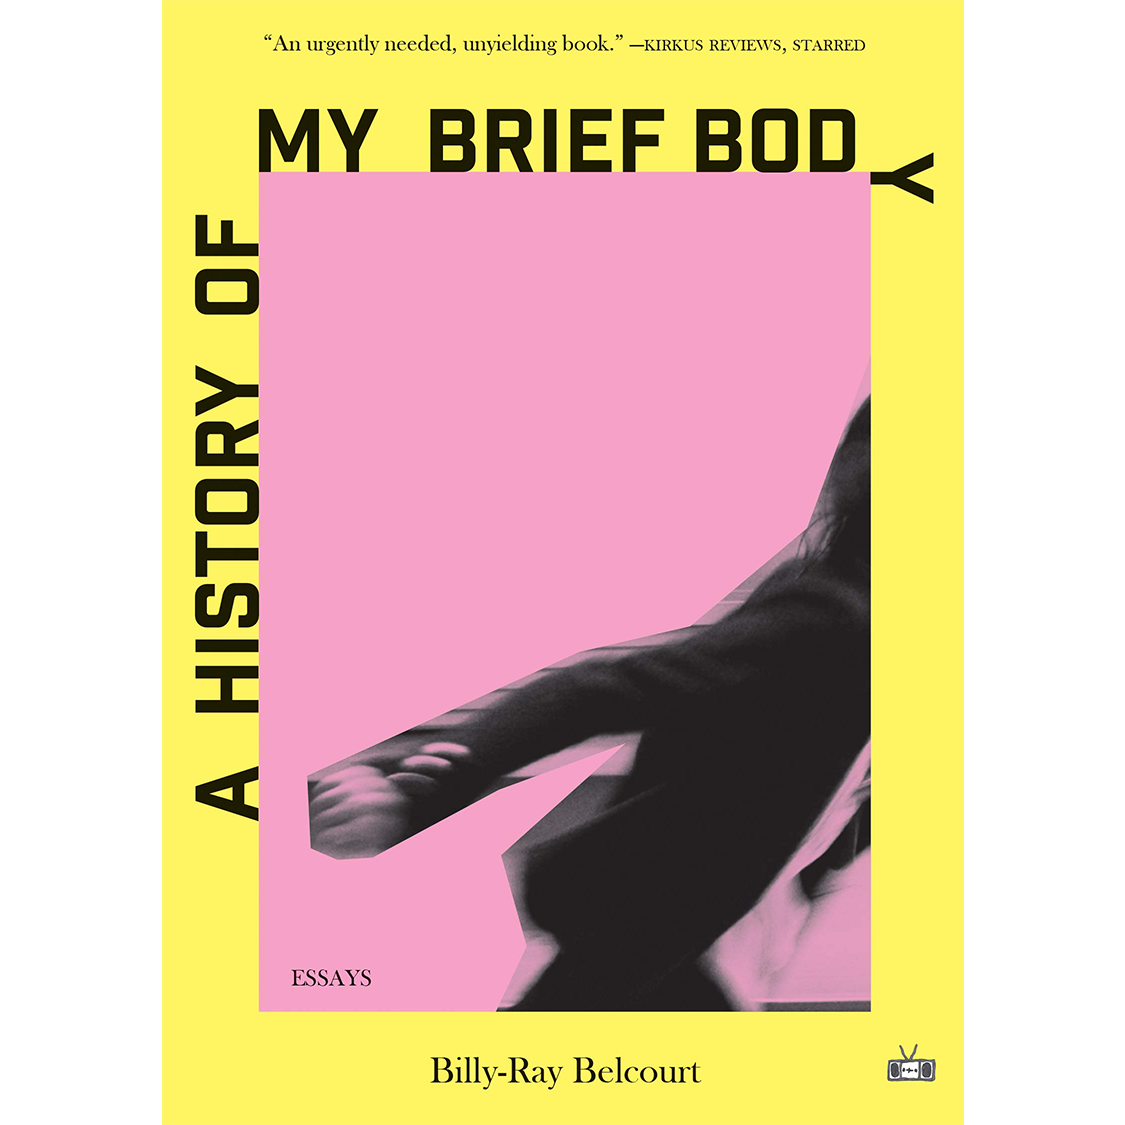 Book Review: Billy-Ray Belcourt's _A History of My Brief Body_